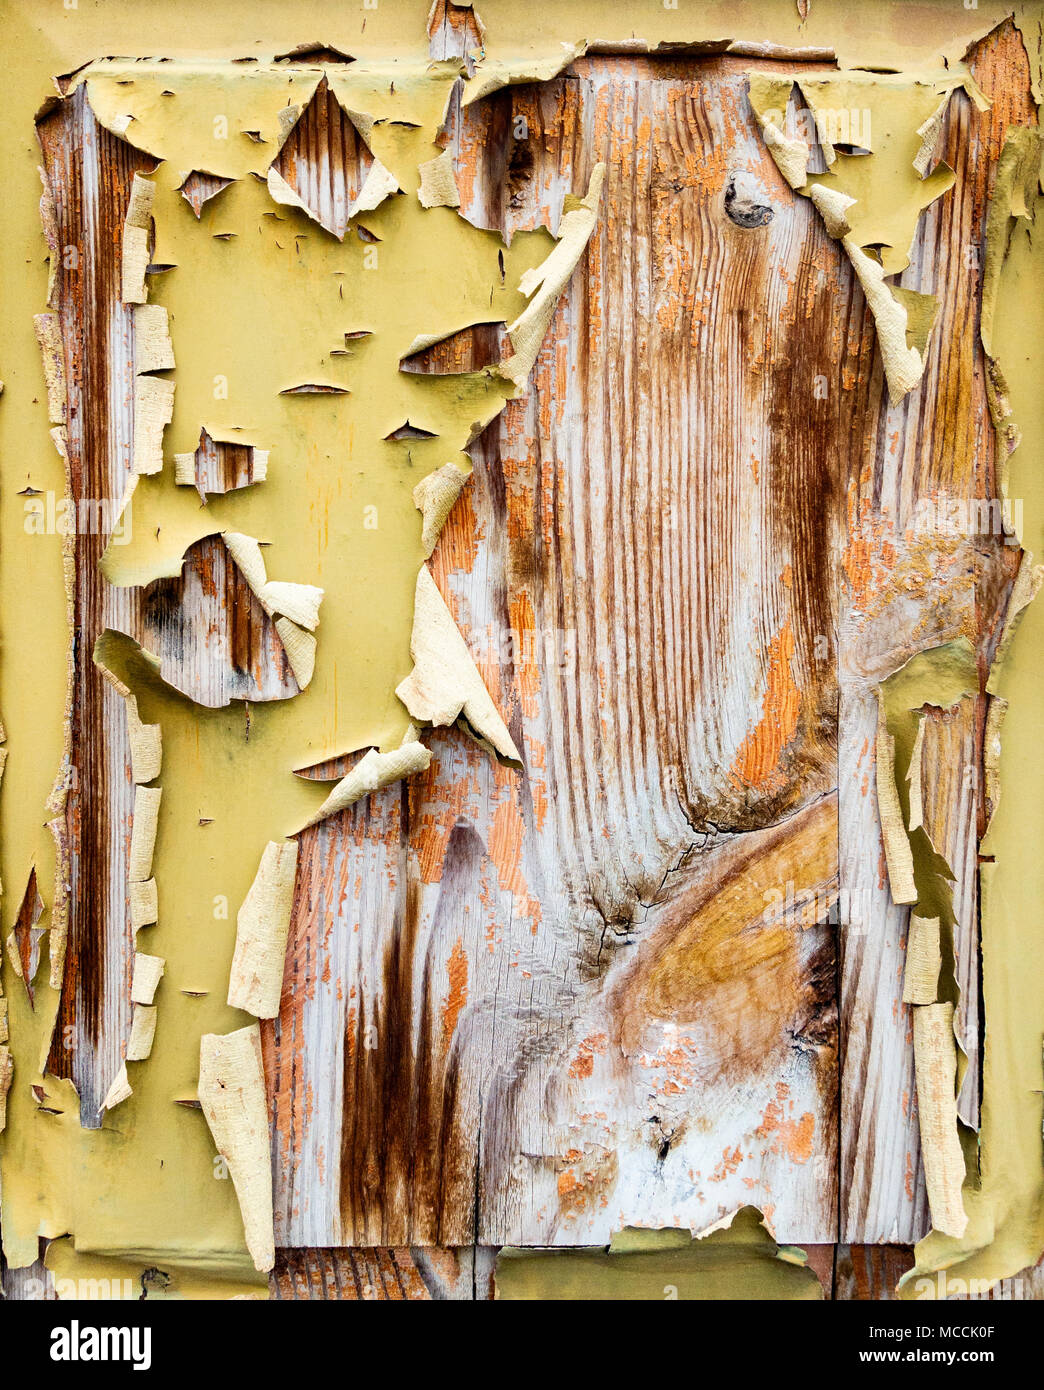 Flakingpeeling paint on old weathered wooden door Suitable fore